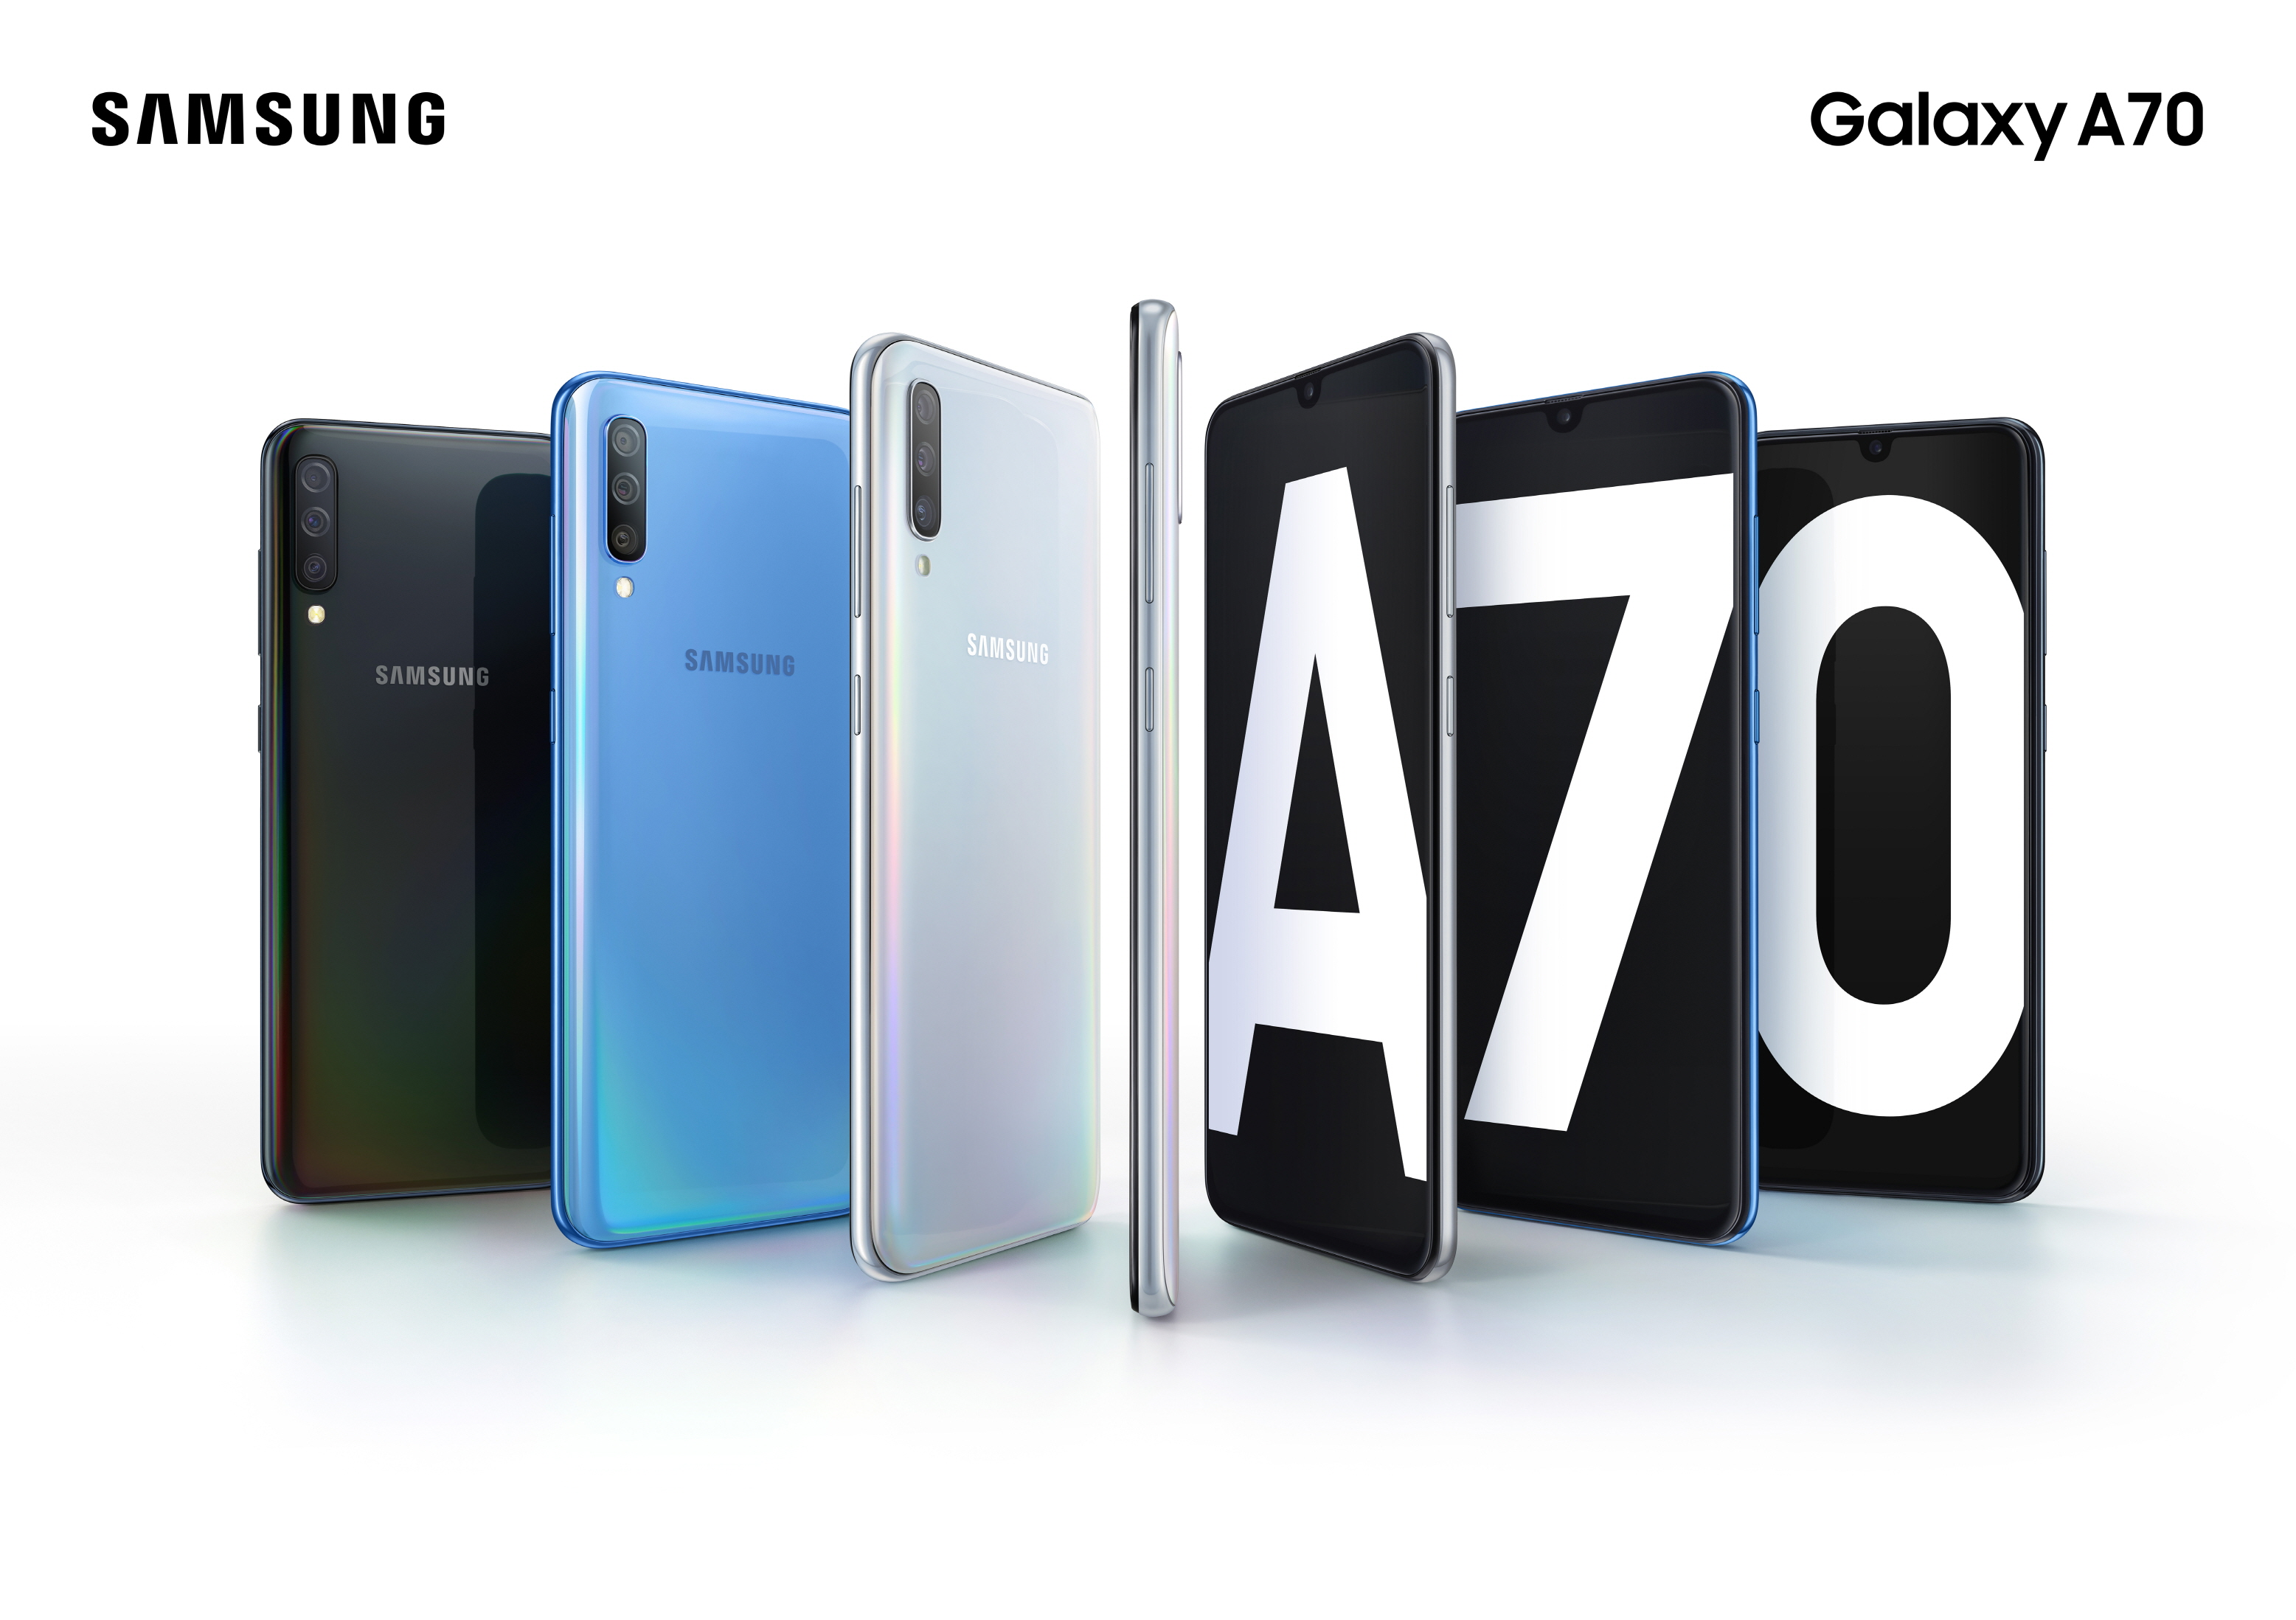 Samsung Electronics  unveiled the Galaxy A70, the newest smartphone in the popular Galaxy A range